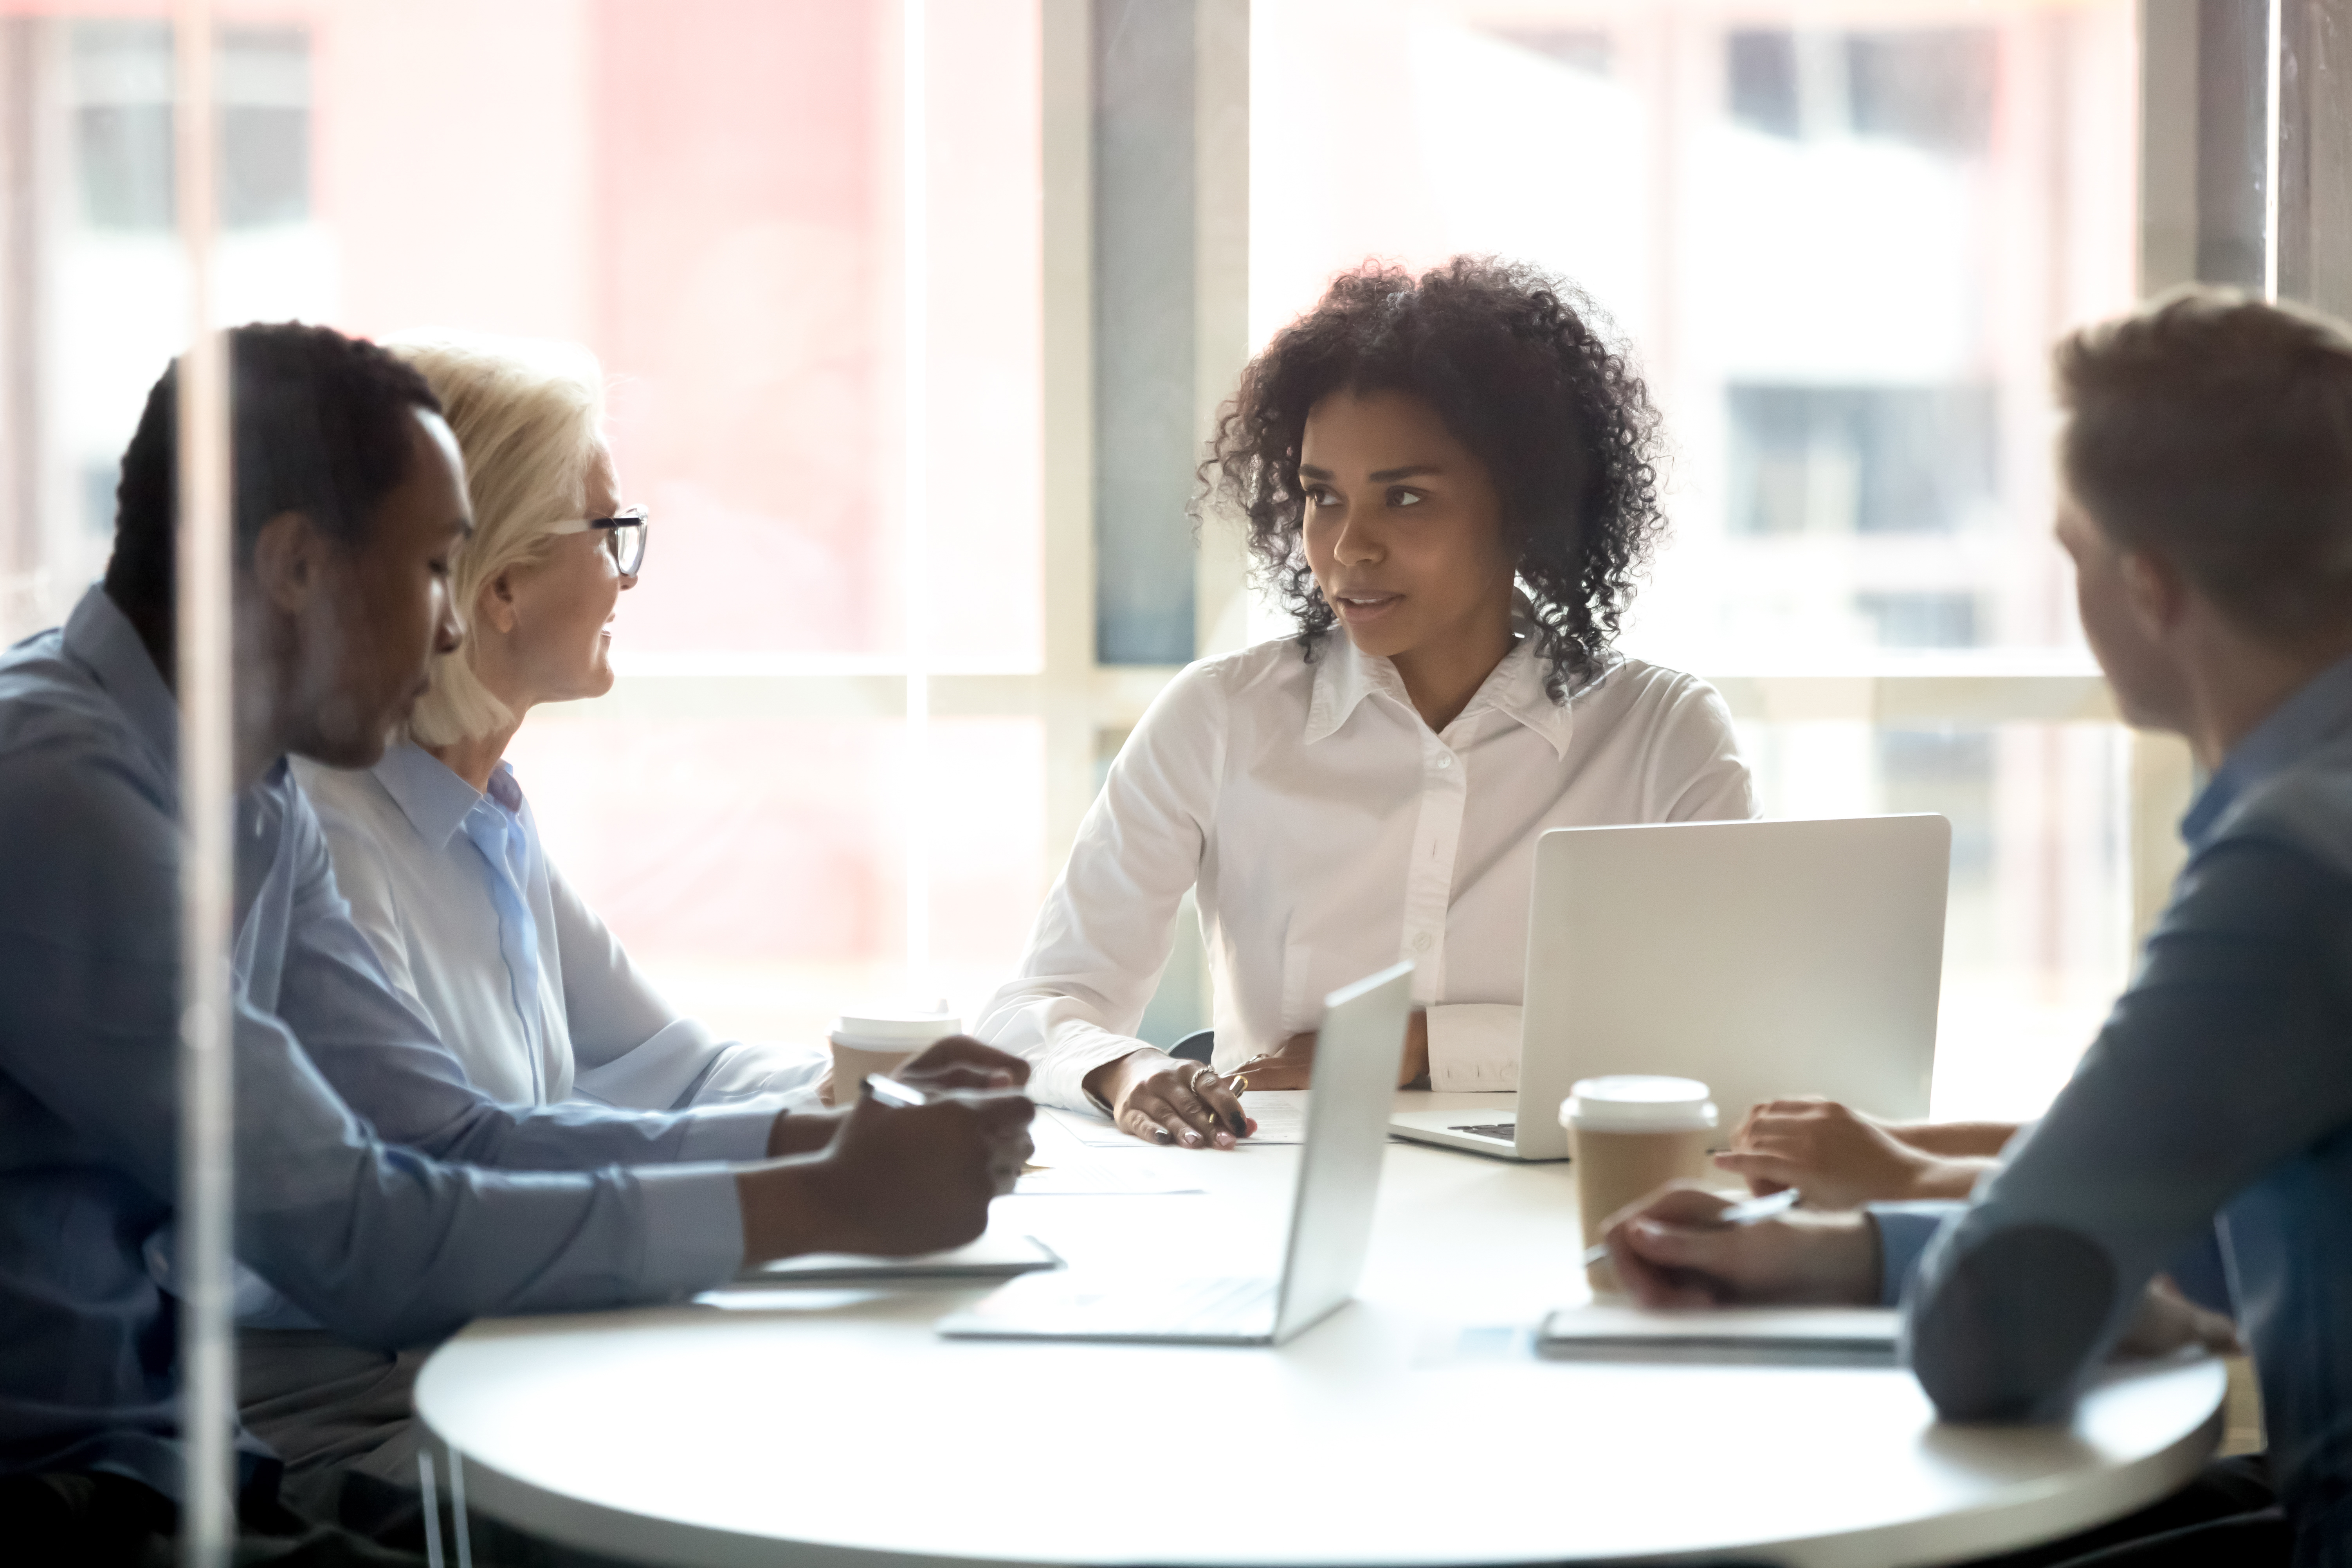 Serious african american female leader talking at diverse group boardroom meeting, multi-ethnic team people employees discussing deal benefits, negotiating on business contract terms with clients